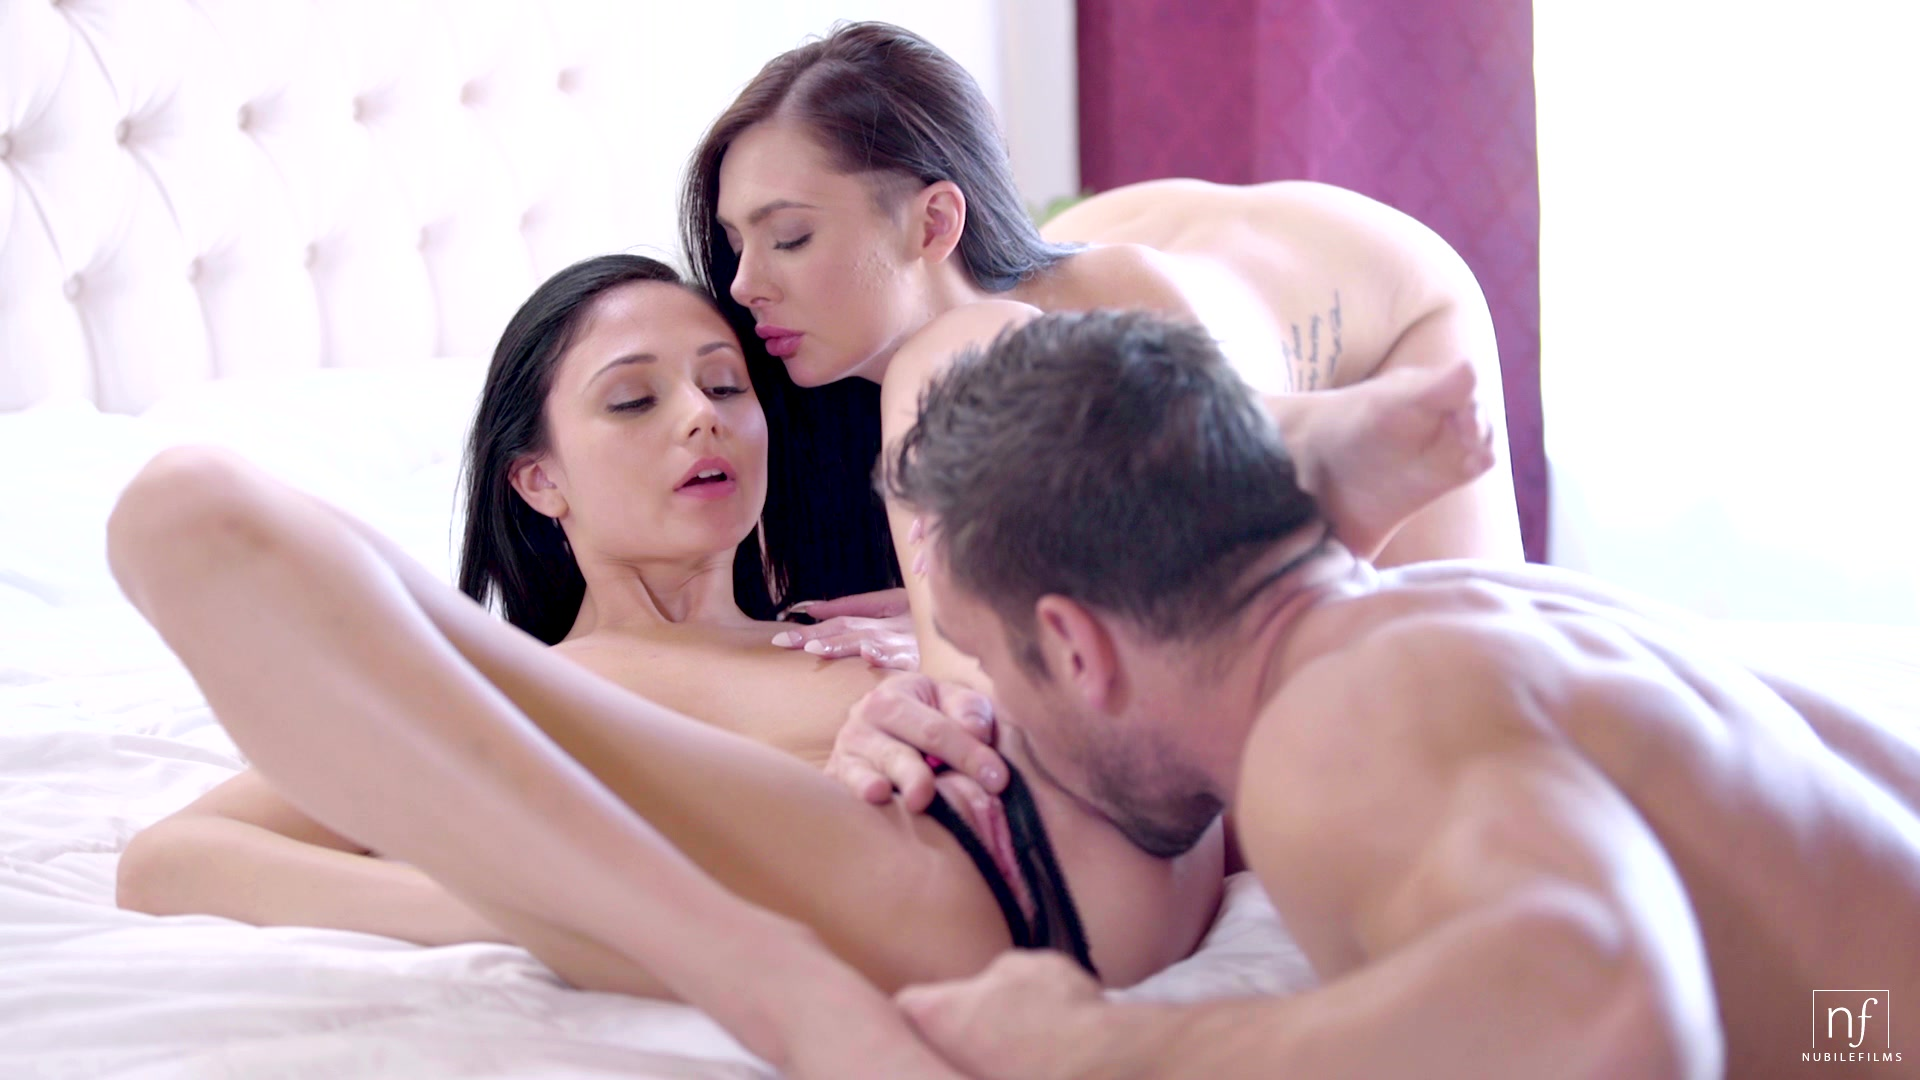 Sexy surprise from ariana marie xxx movie 7